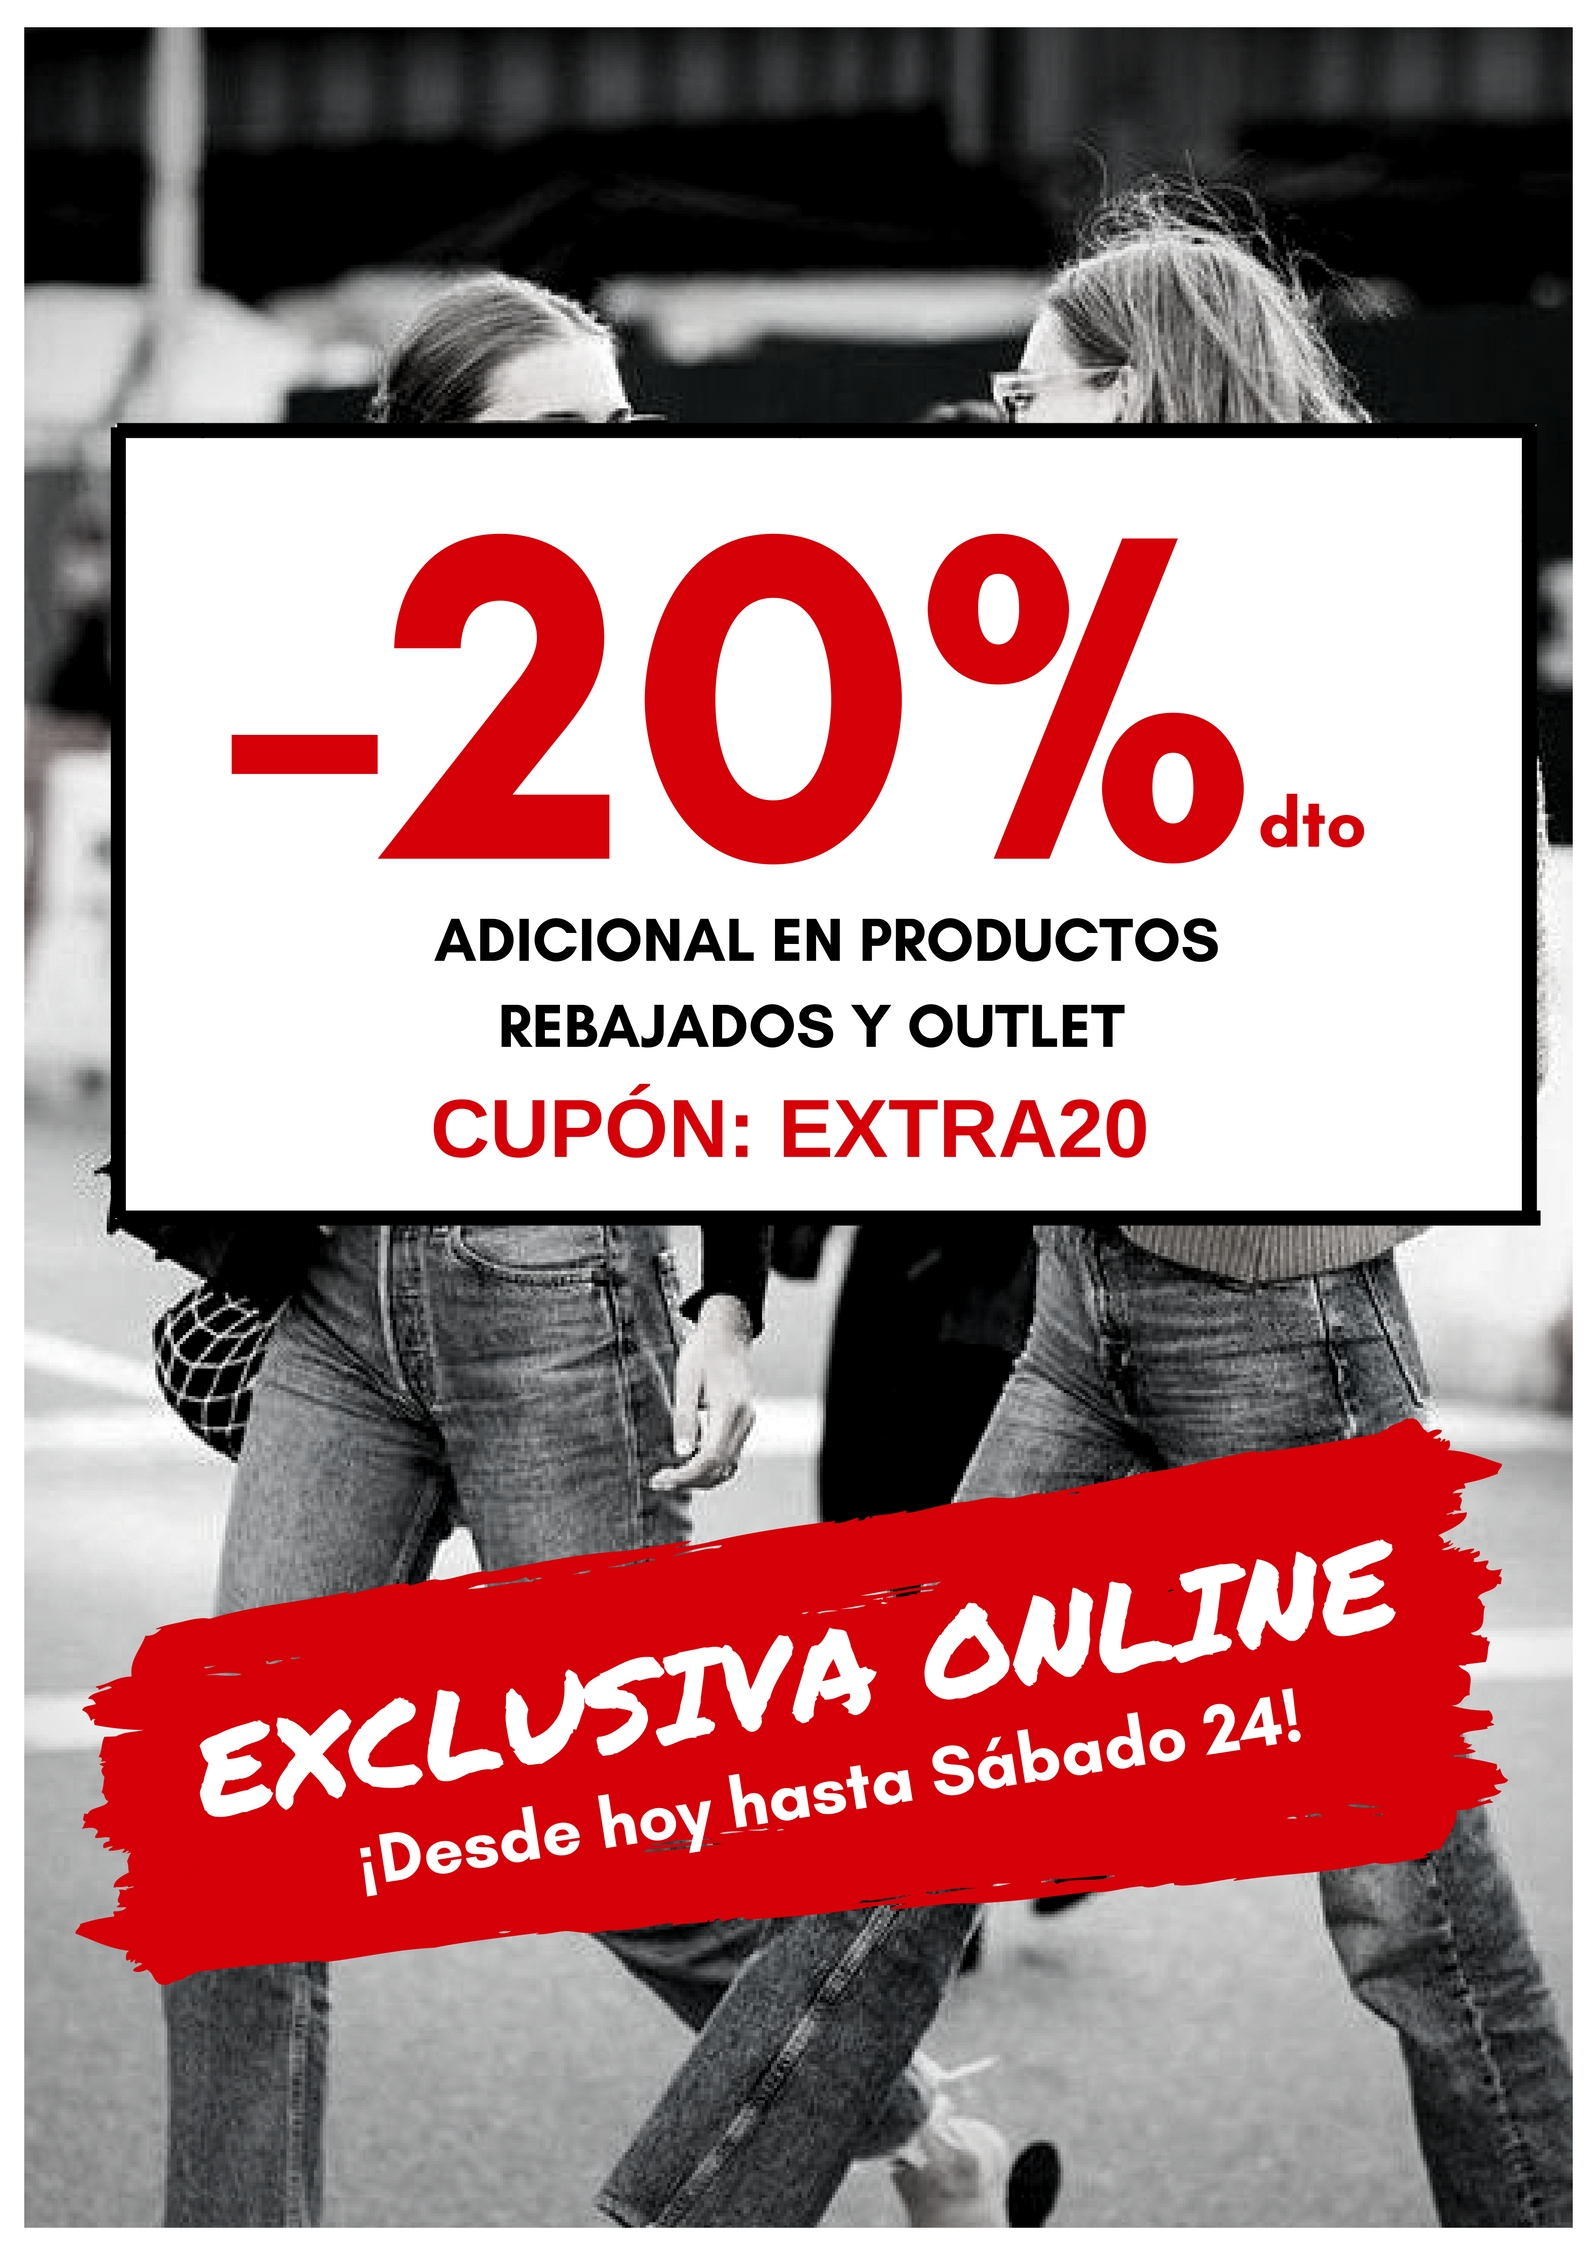 Exclusiva Online